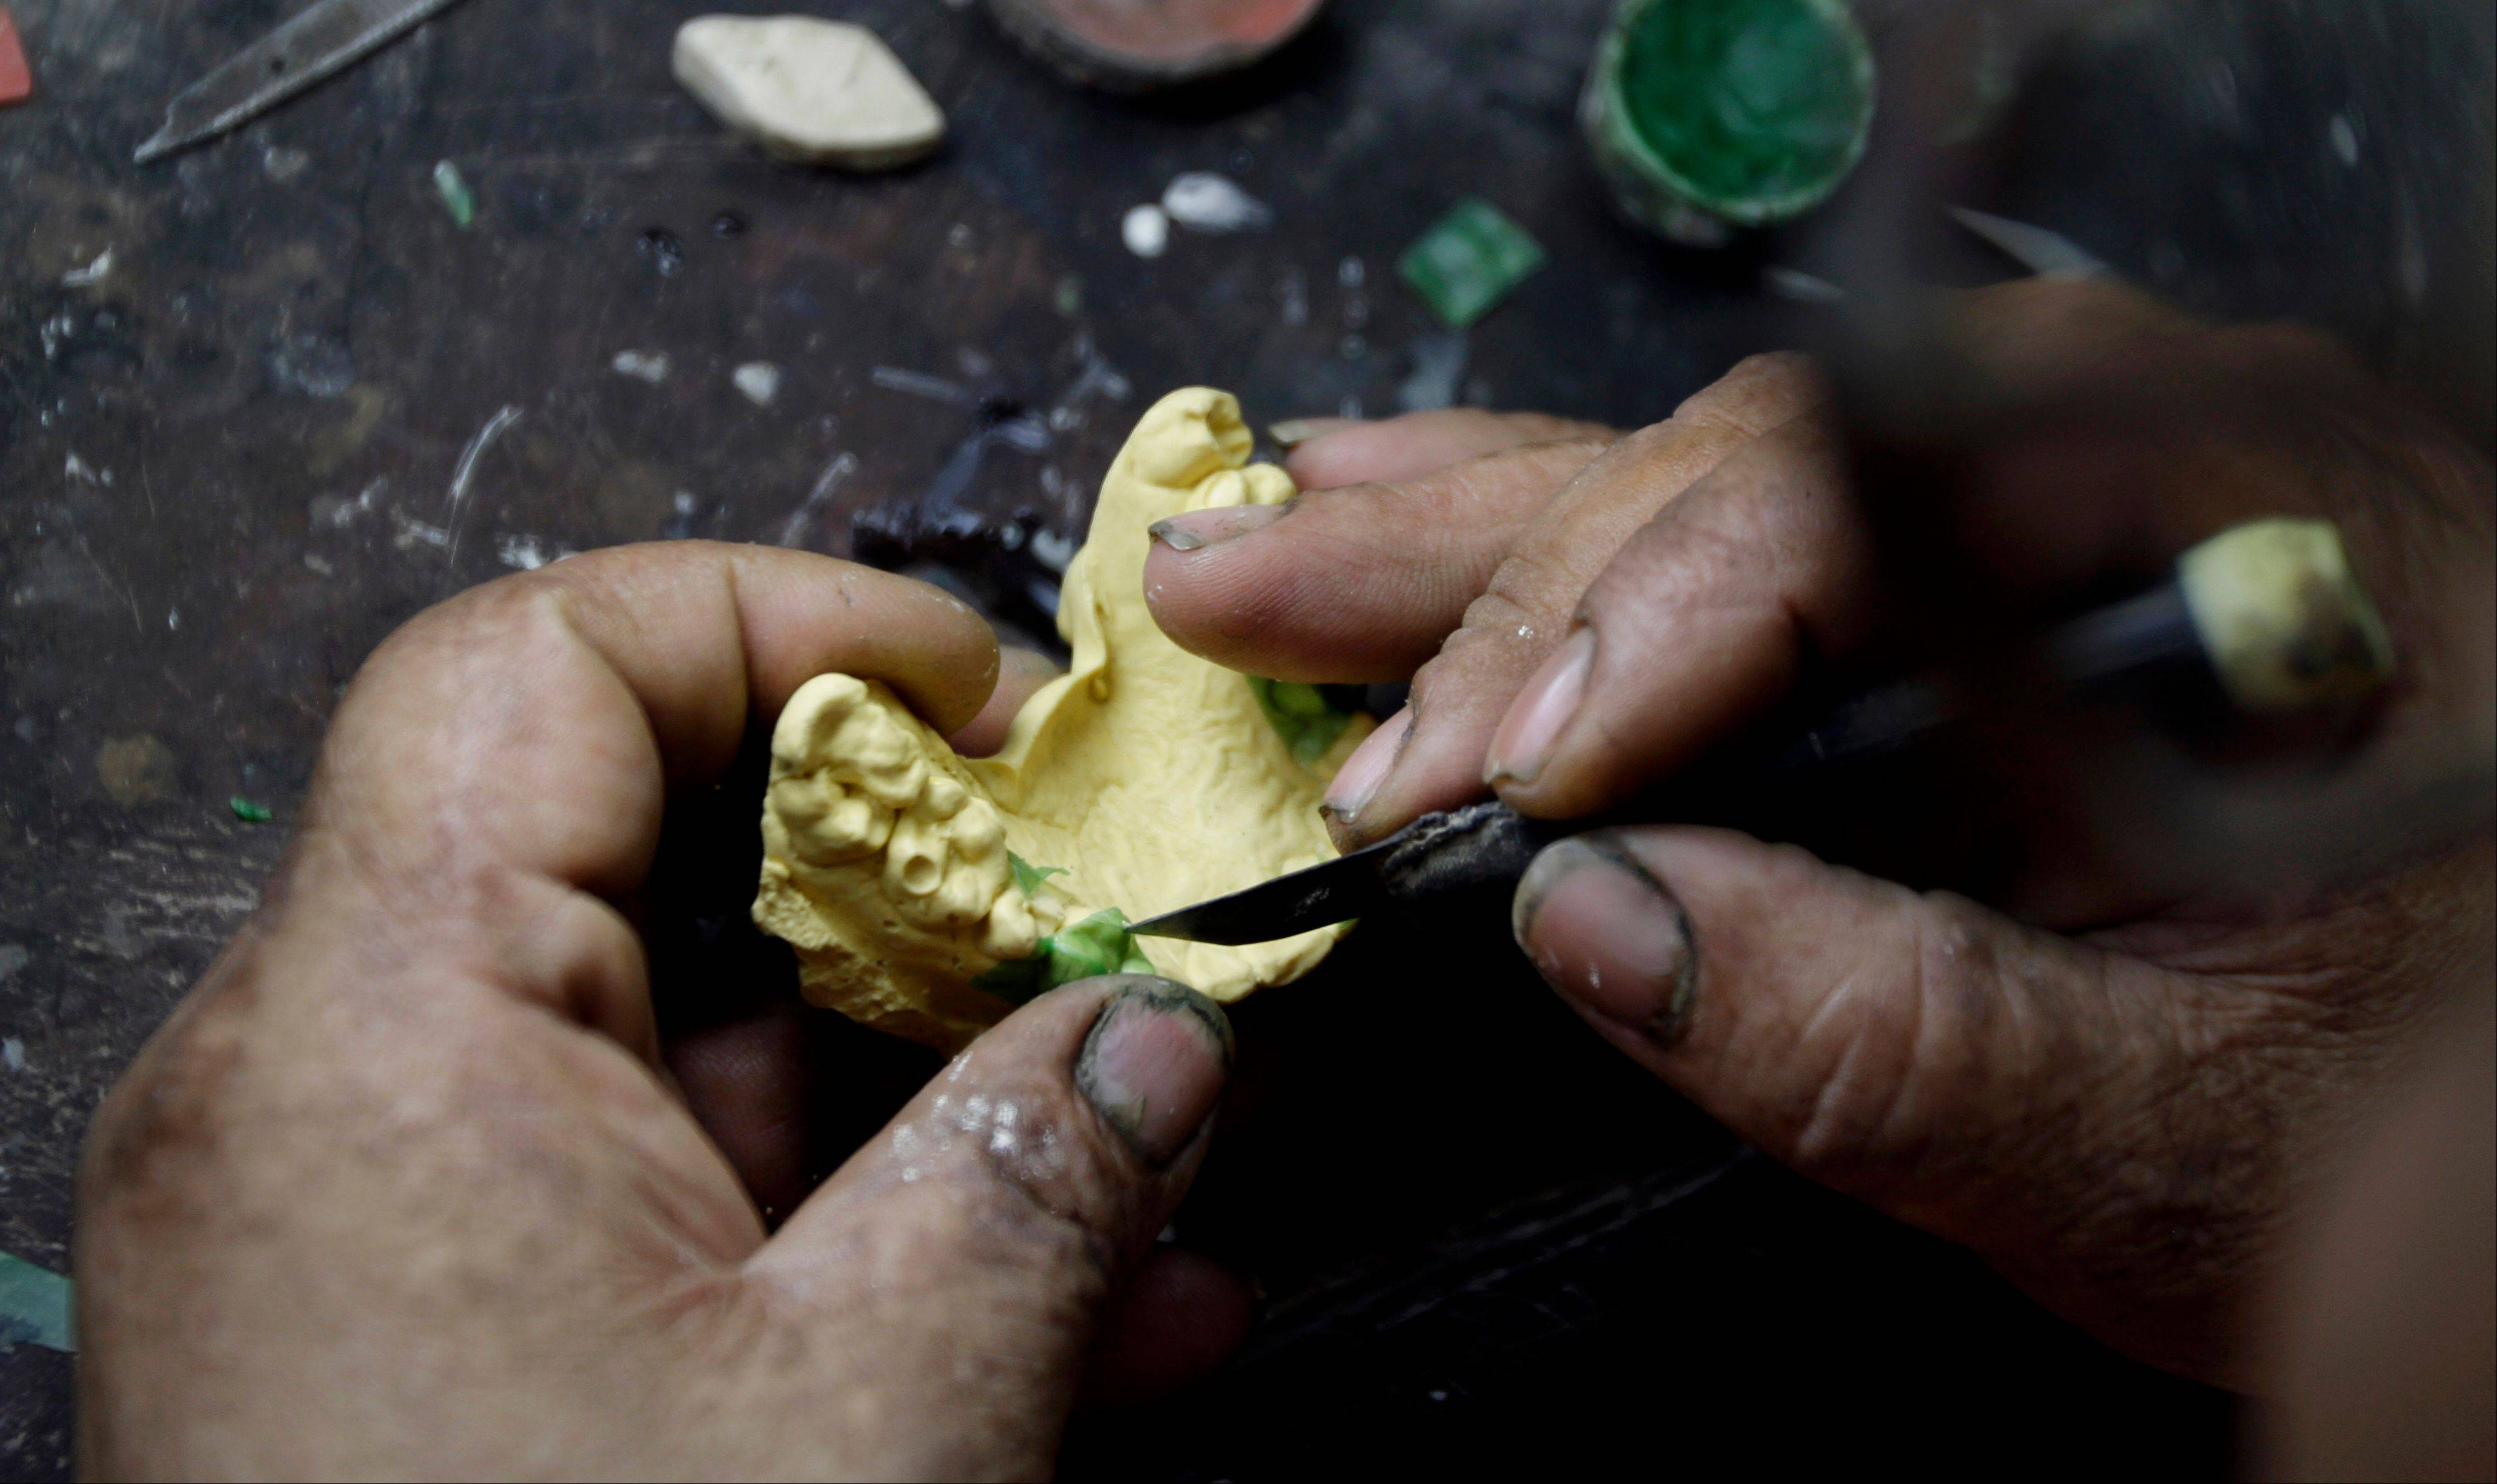 In this June 20, 2011 photo, a man who did not want to be identified molds a tooth with wax in order to make a gold tooth in his workshop in Havana. One goal of Cuban President Raul Castro's economic opening is to legalize at least a portion of the black market so that those making a living from it will register themselves with authorities and pay taxes, and there is some evidence it is working. However, the sale of gold is regulated, so those who melt it down for use in false teeth are not able to get licenses and continue to be part of the black market. The tooth maker charges up to $40 per tooth, including installation, using gold melted down from jewelry and trinkets he buys from secret suppliers. (AP Photo/Franklin Reyes)